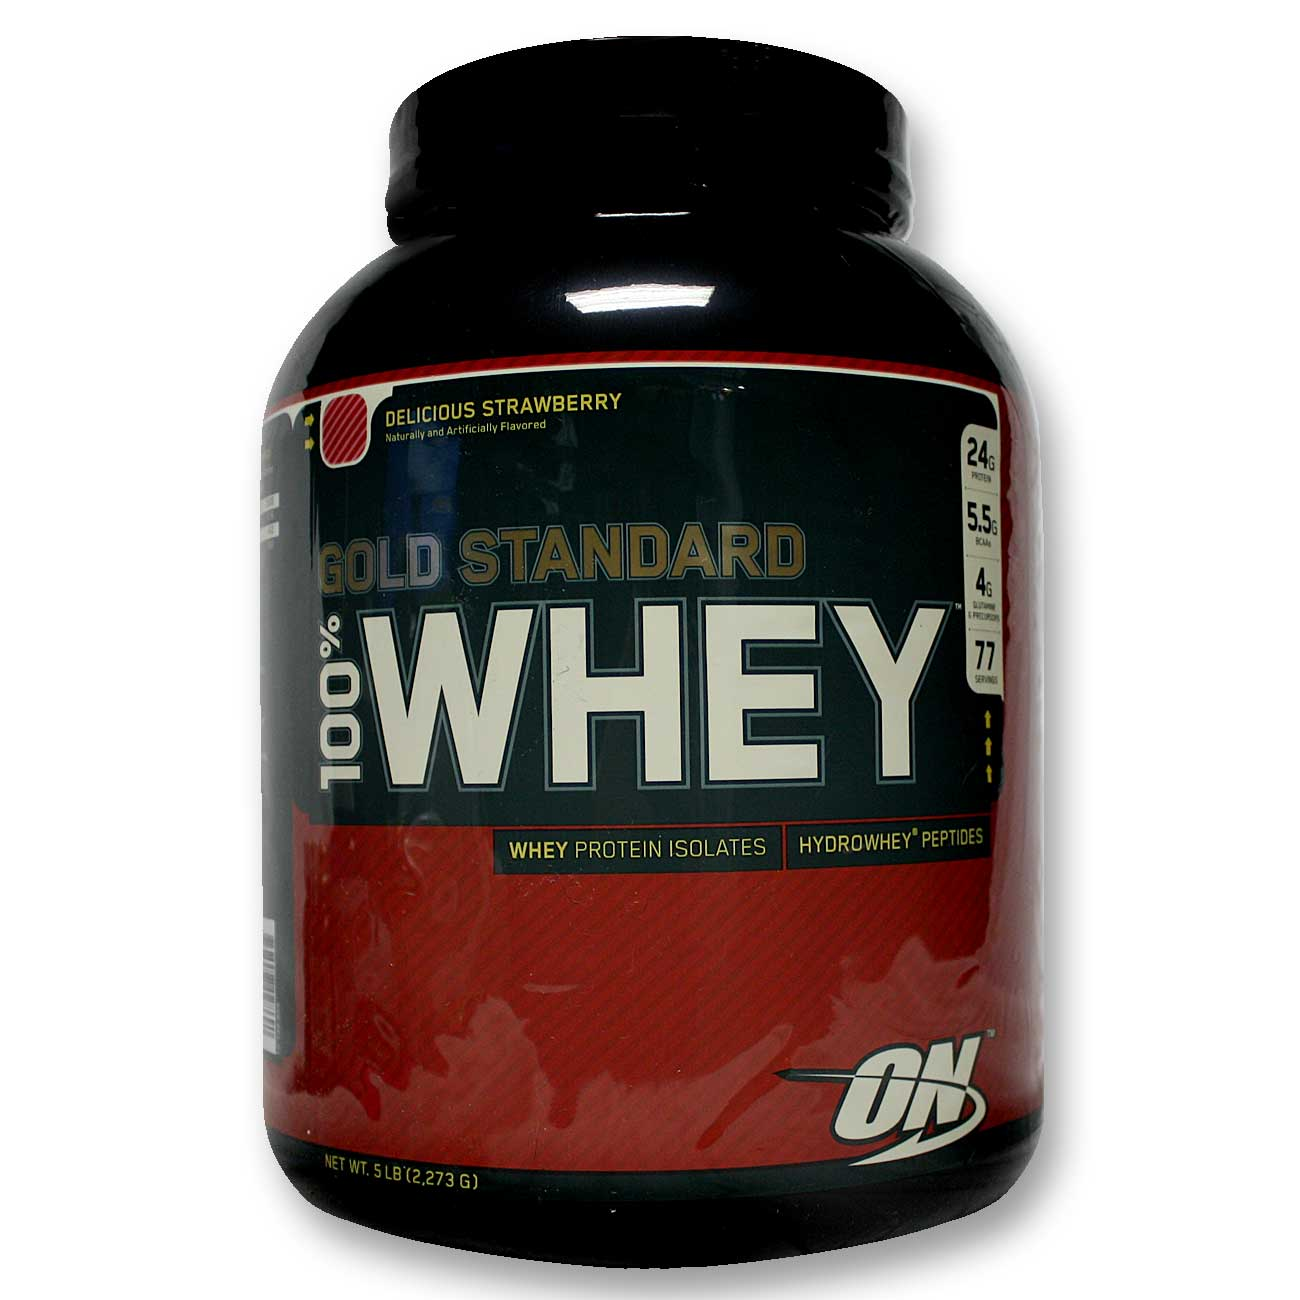 Optimum Nutrition's Gold Standard % Whey uses pure Whey Protein Isolates as the primary ingredient. Combined with ultra-filtered whey protein concentrate, each serving provides 24 grams of all-whey protein and grams of naturally occurring Branched Chain Amino Acids (BCAAs) which are prized by athletes for their muscle building thinking-sometimes.mls: